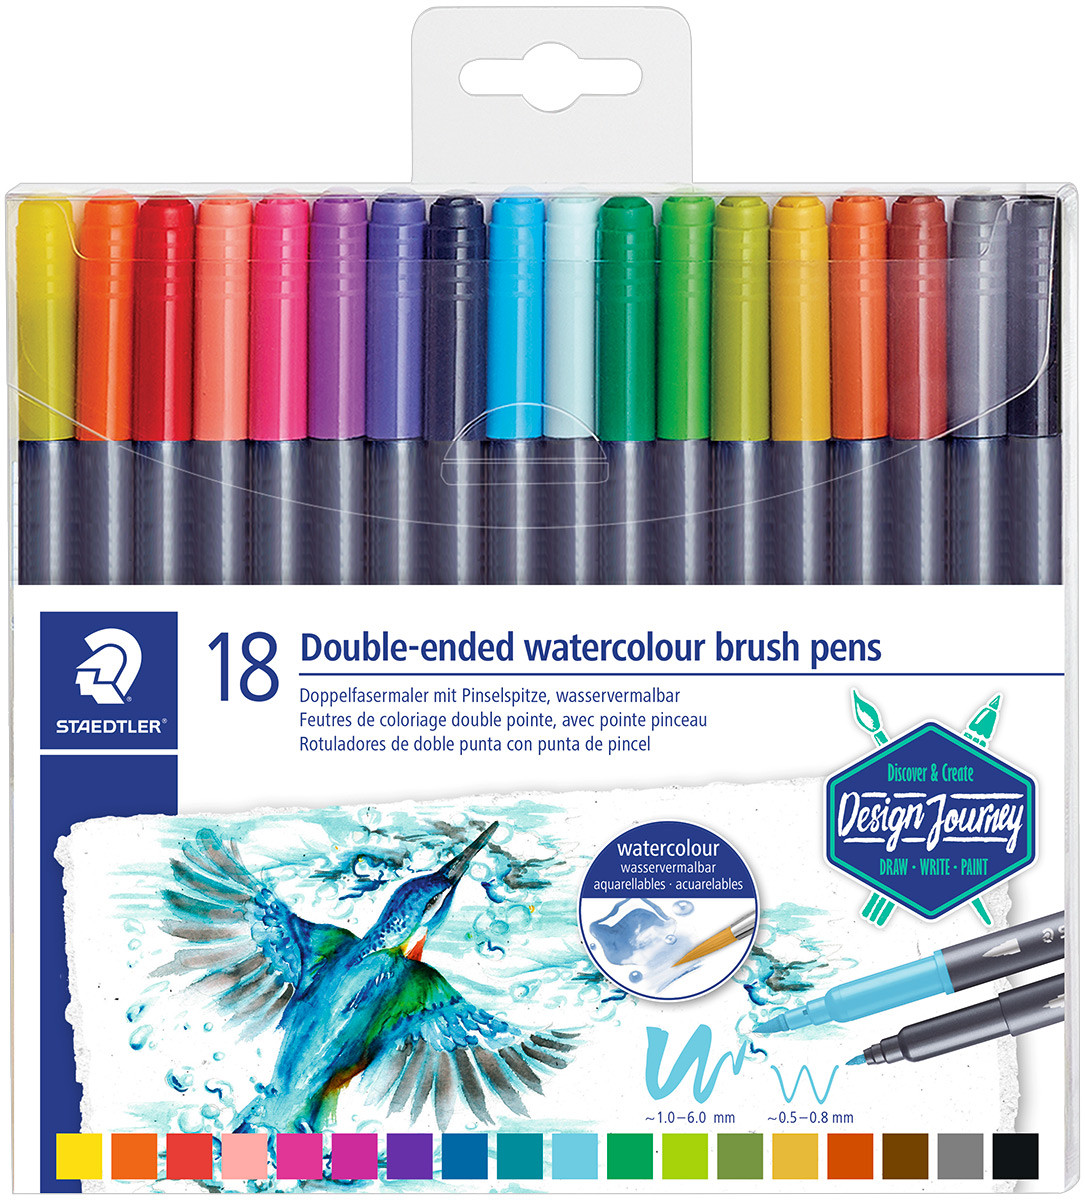 Staedtler Double Ended Watercolour Brush Pen - Assorted Colours (Pack of 18)